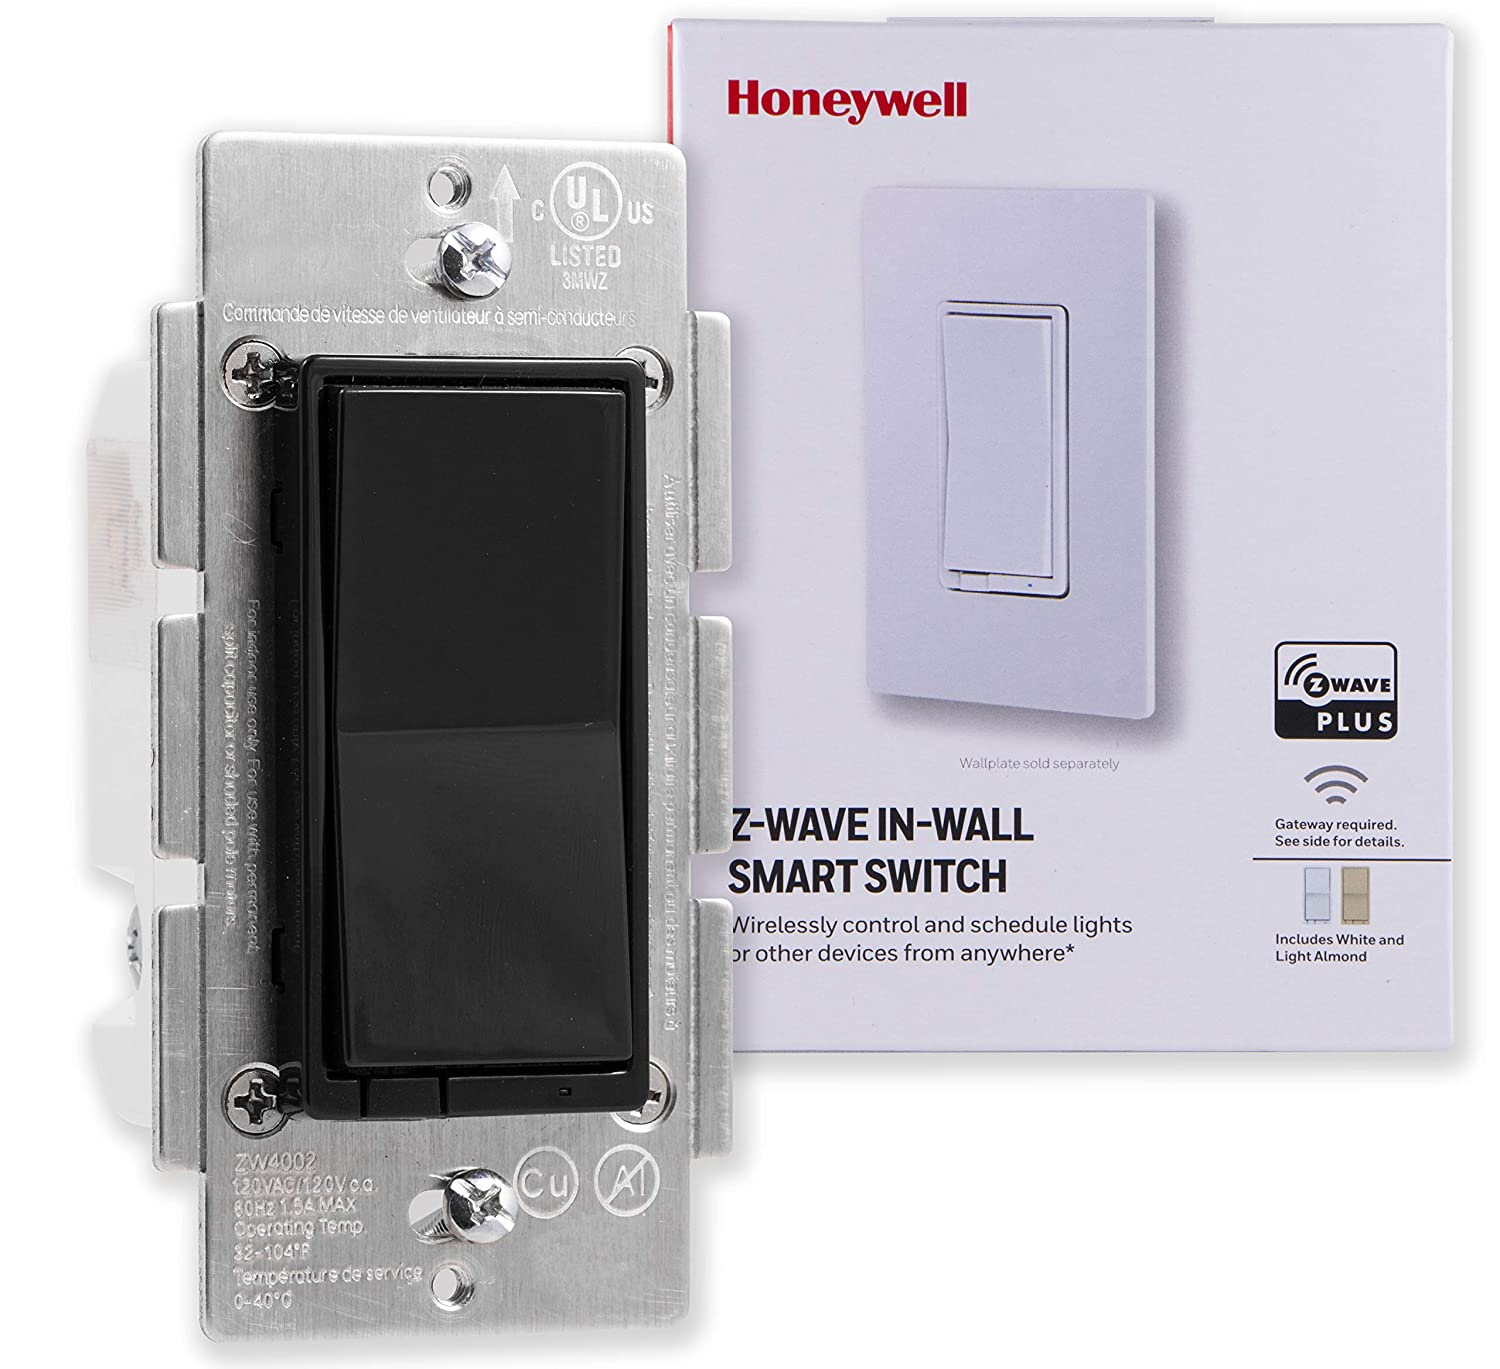 Honeywell Z-Wave Plus On/Off Smart Light Switch, in-Wall Paddle, Black   Built-in Repeater & Range Extender   ZWave Hub Required-SmartThings, Wink, Alexa Compatible, 38210, White & Light Almond